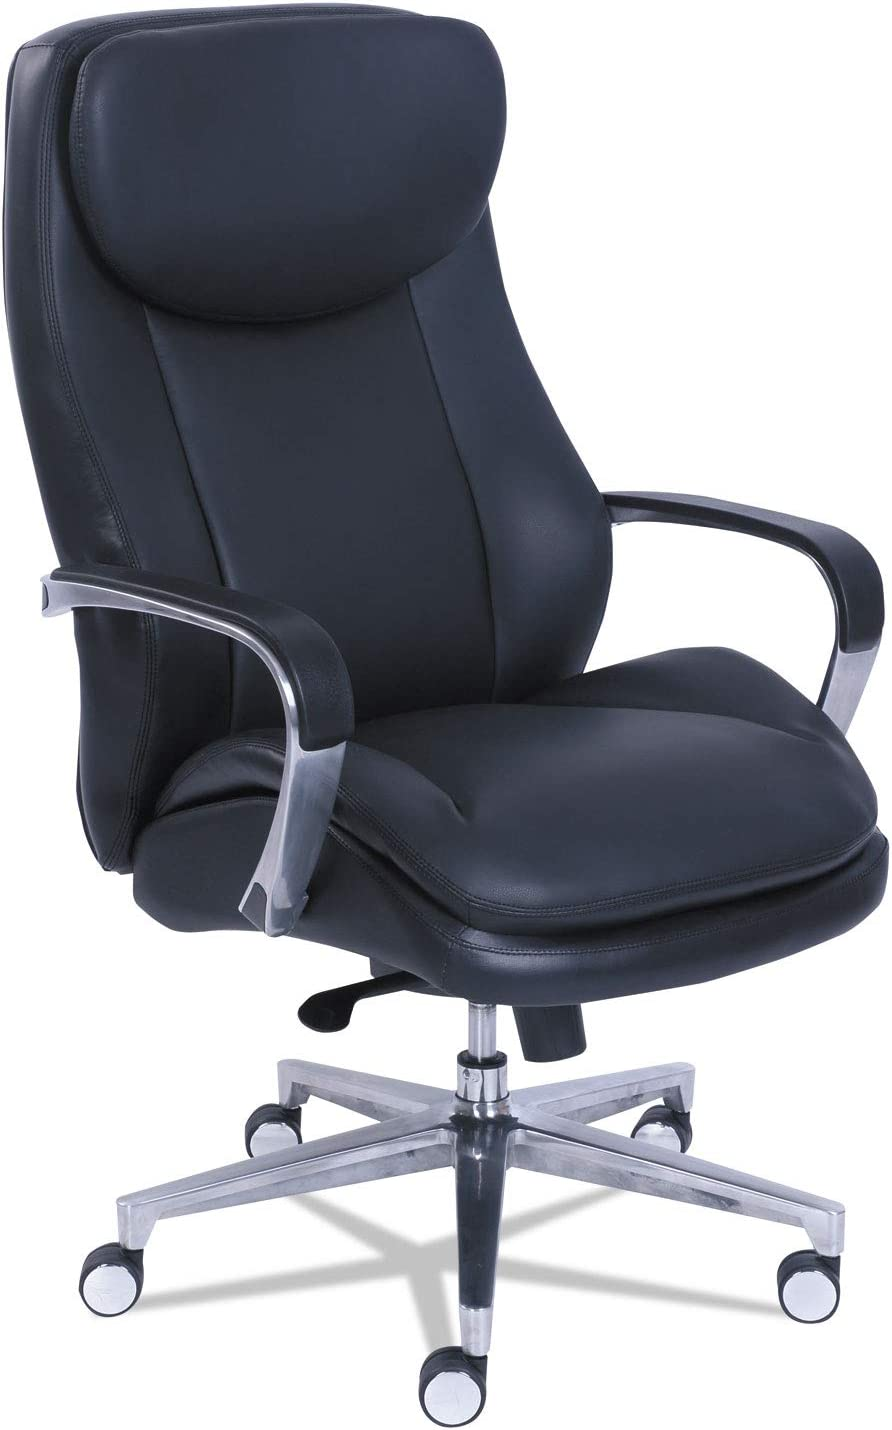 LZB36 - La-z-boy Chair Company Commercial 36 High-Back Executive Chair